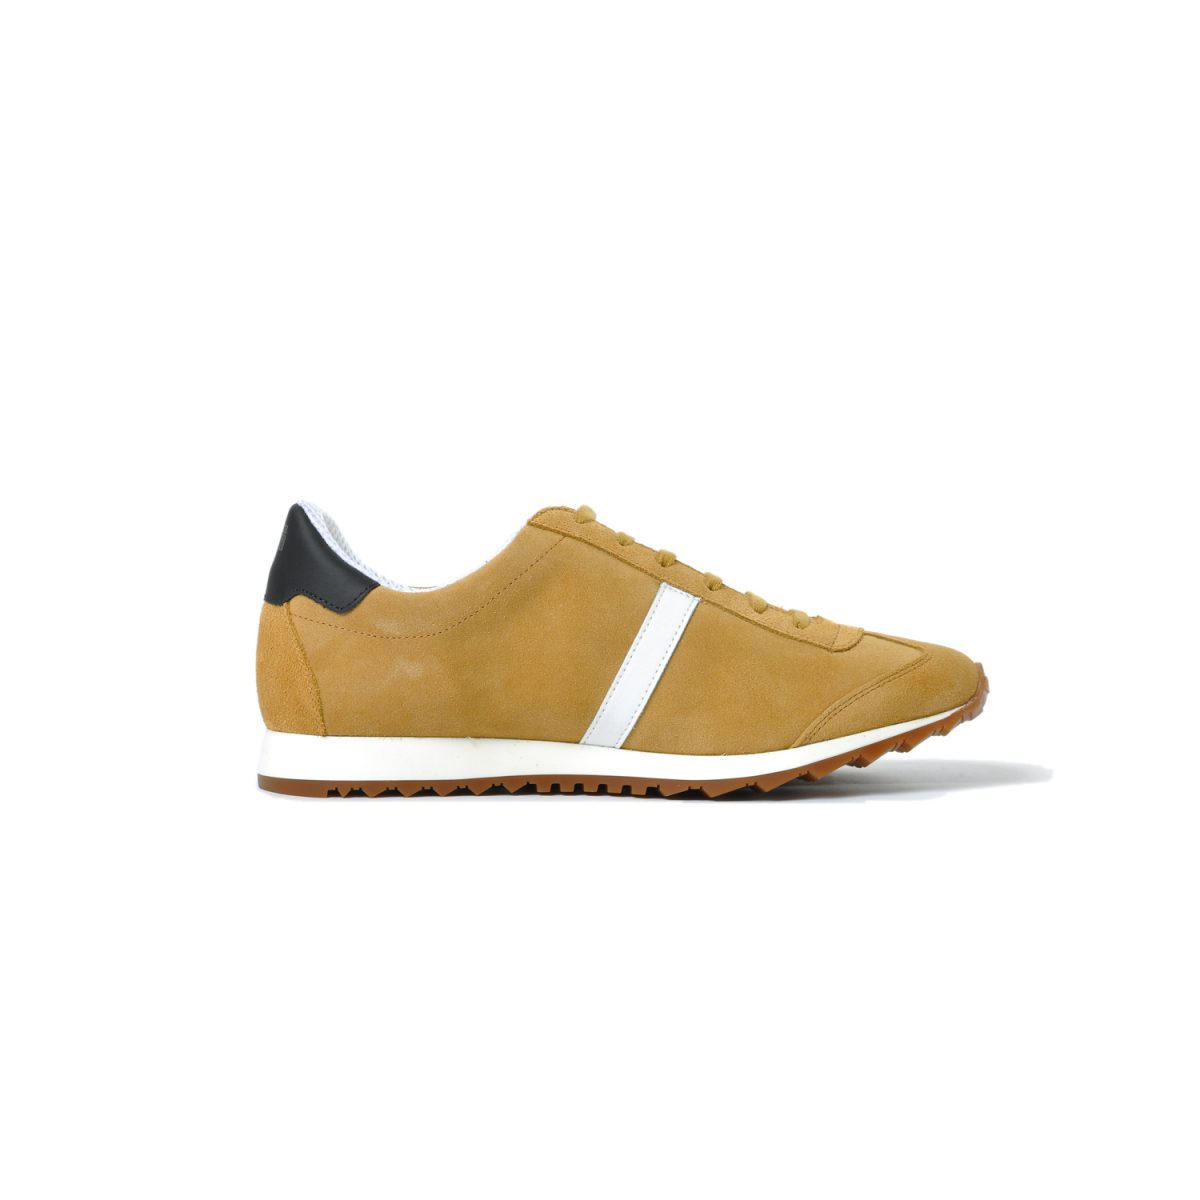 Tisza shoes - Martfű - Tobacco-white-black